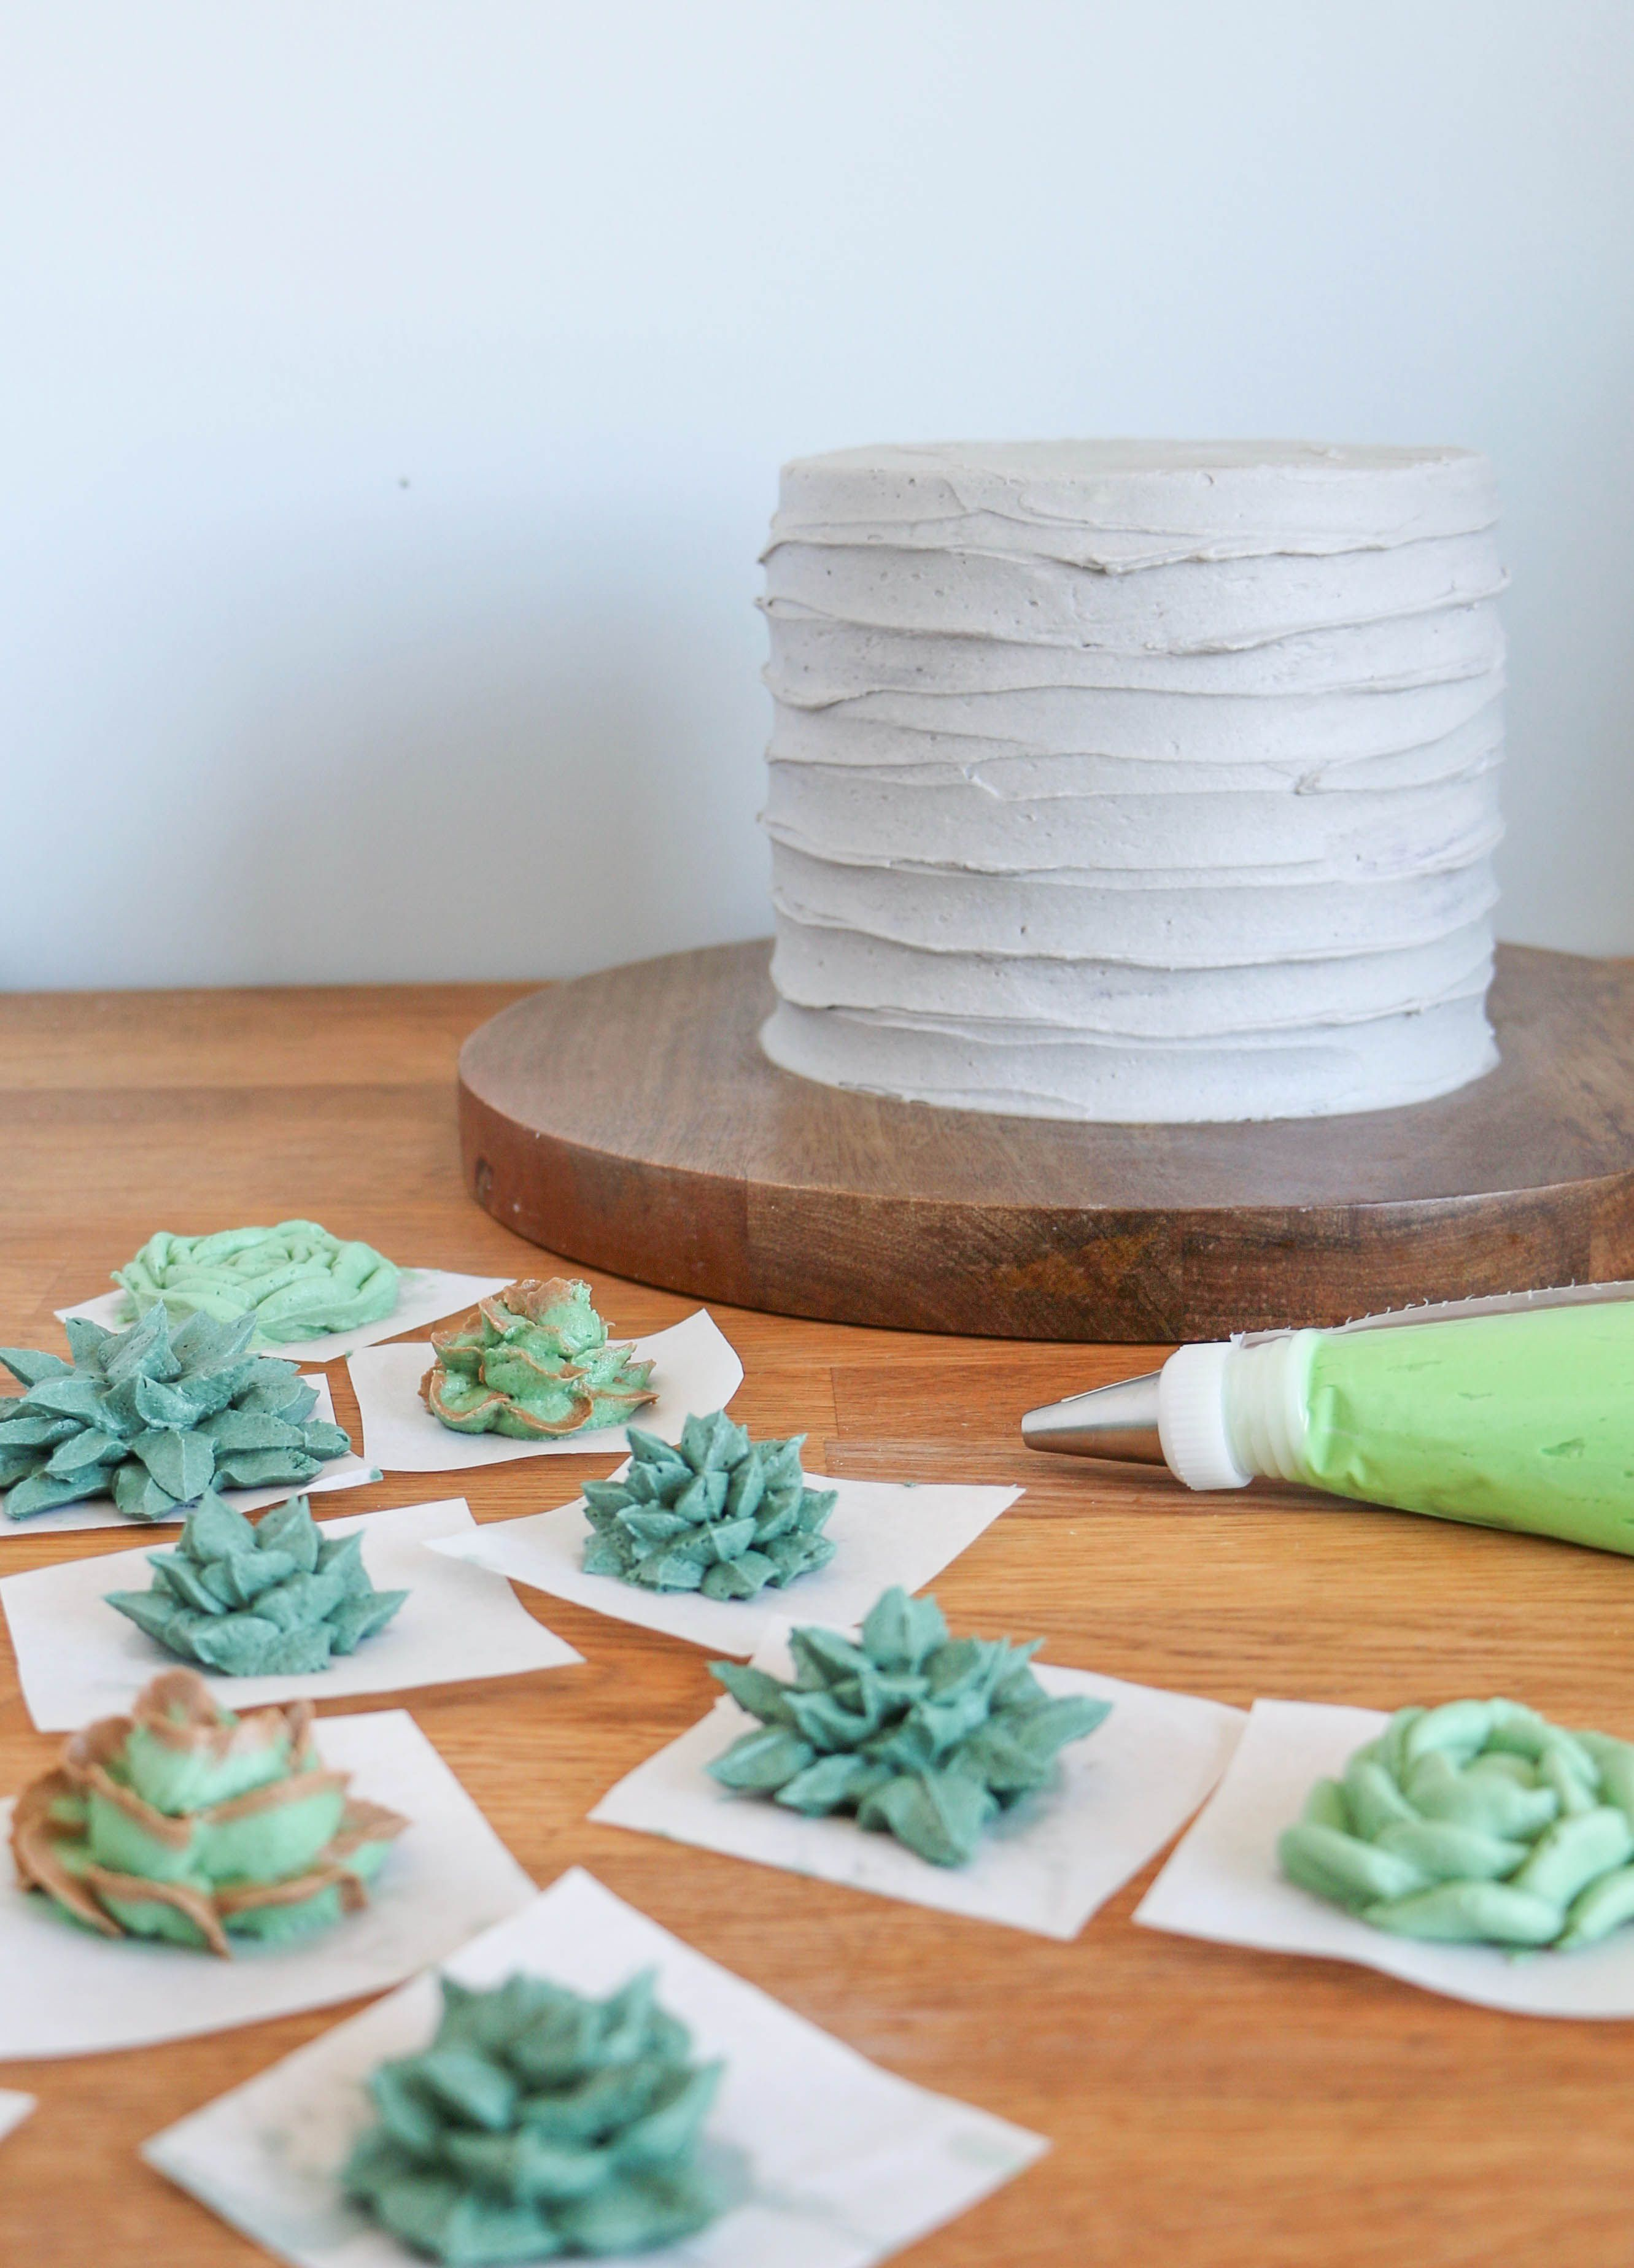 How to Make the World's Most Succulent Cake We seriously can't stop swooning over Erin Gardner's buttercream succulent cake. Get her step-by-step tutorial for five succulent varieties here! to Make the World's Most Succulent Cake We seriously can't stop swooning over Erin Gardner's buttercream succulent cake. Get her step-by-step tutorial for five succulent varieties here!We seriously can't stop swooning over Erin Gardner's buttercream succulent cake. Get her step-by-step tutorial for five succulent varieties here!